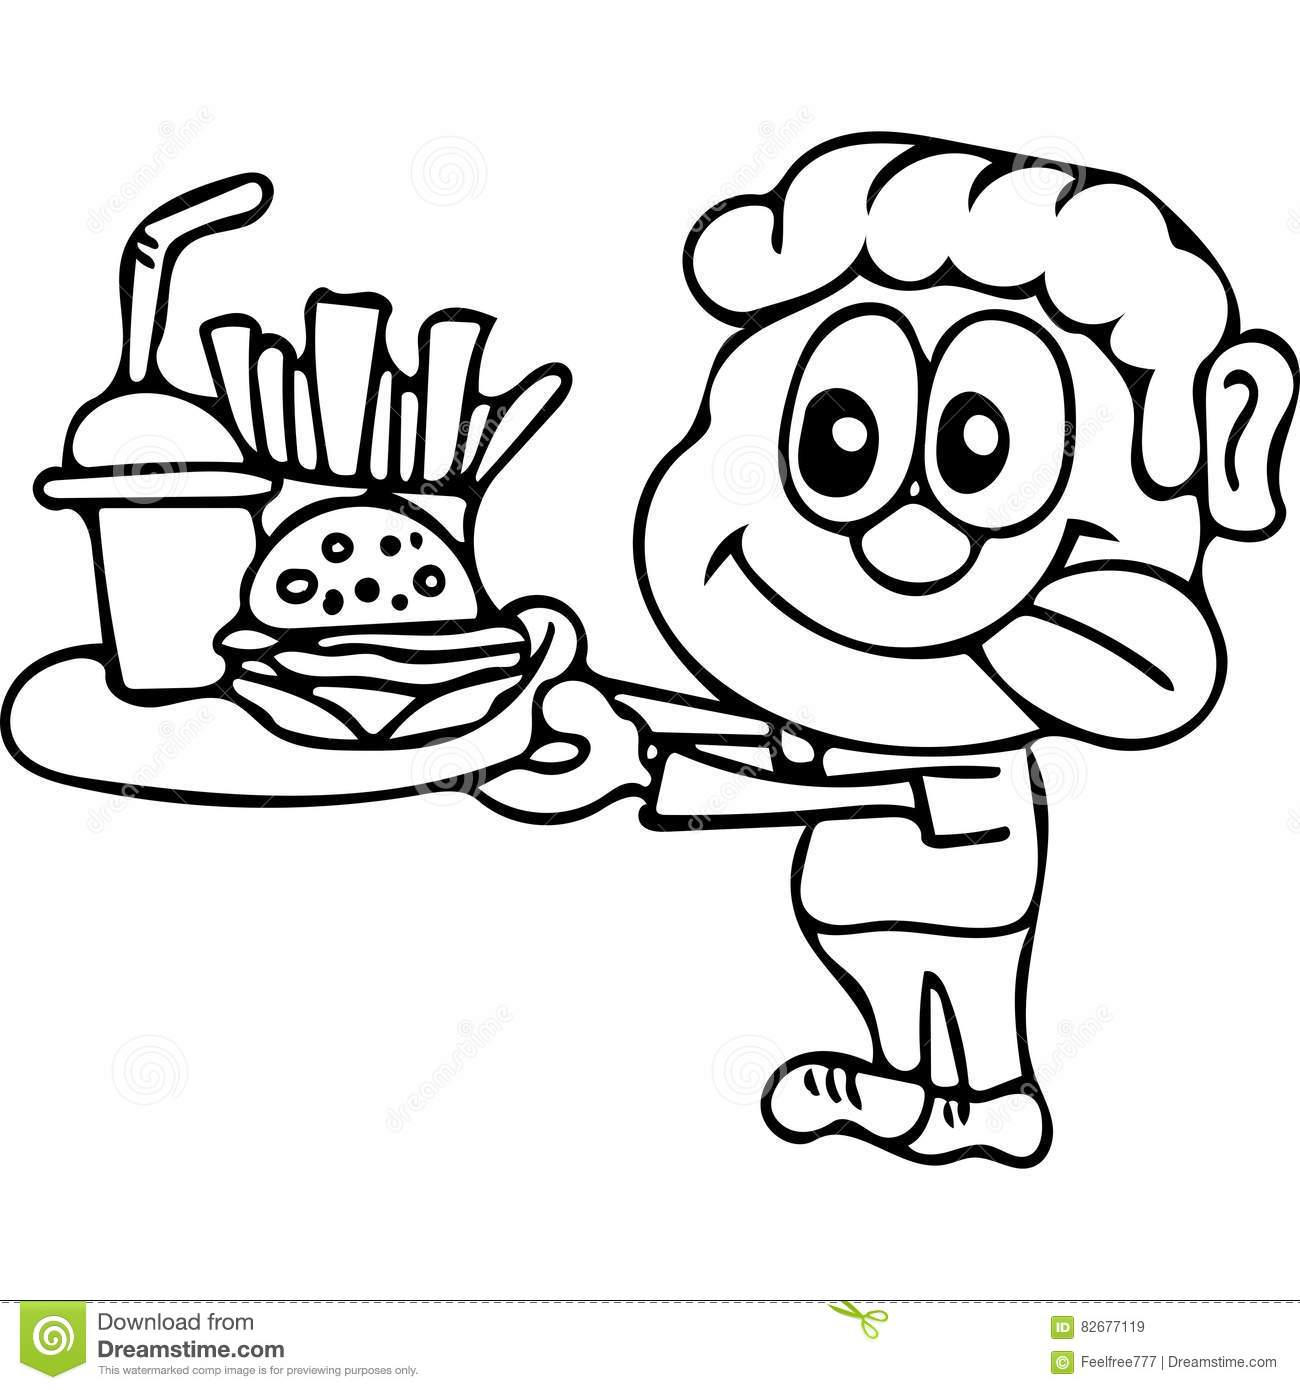 1300x1390 Modest Coloring Pages Of Fast Food New Unhealthy Gallery Free